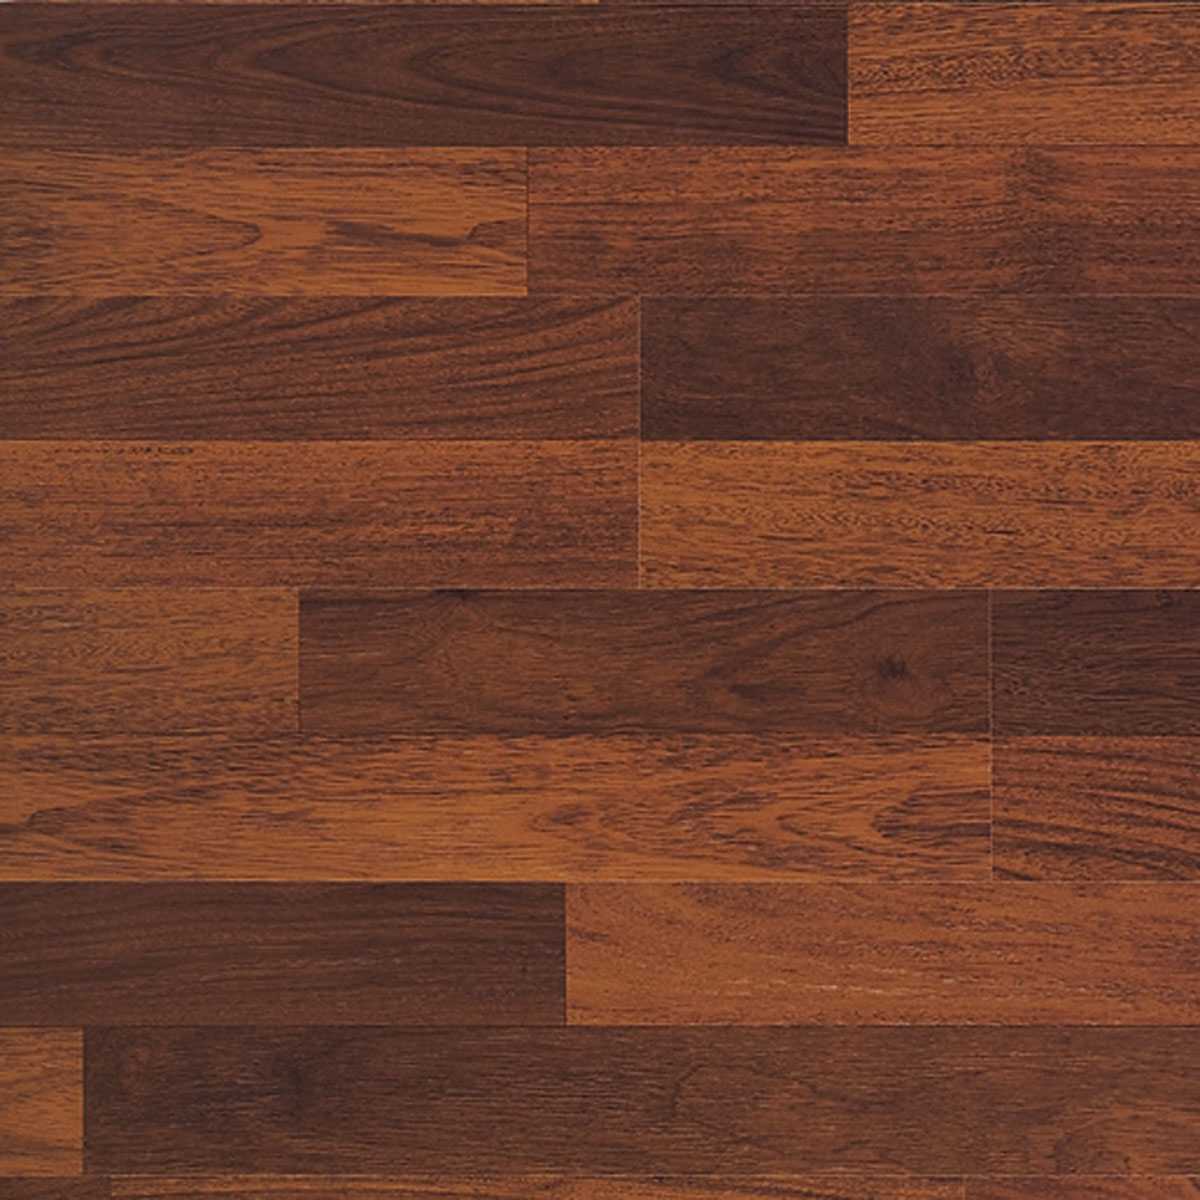 Laminate flooring hardwood and laminate flooring for Floating hardwood floor